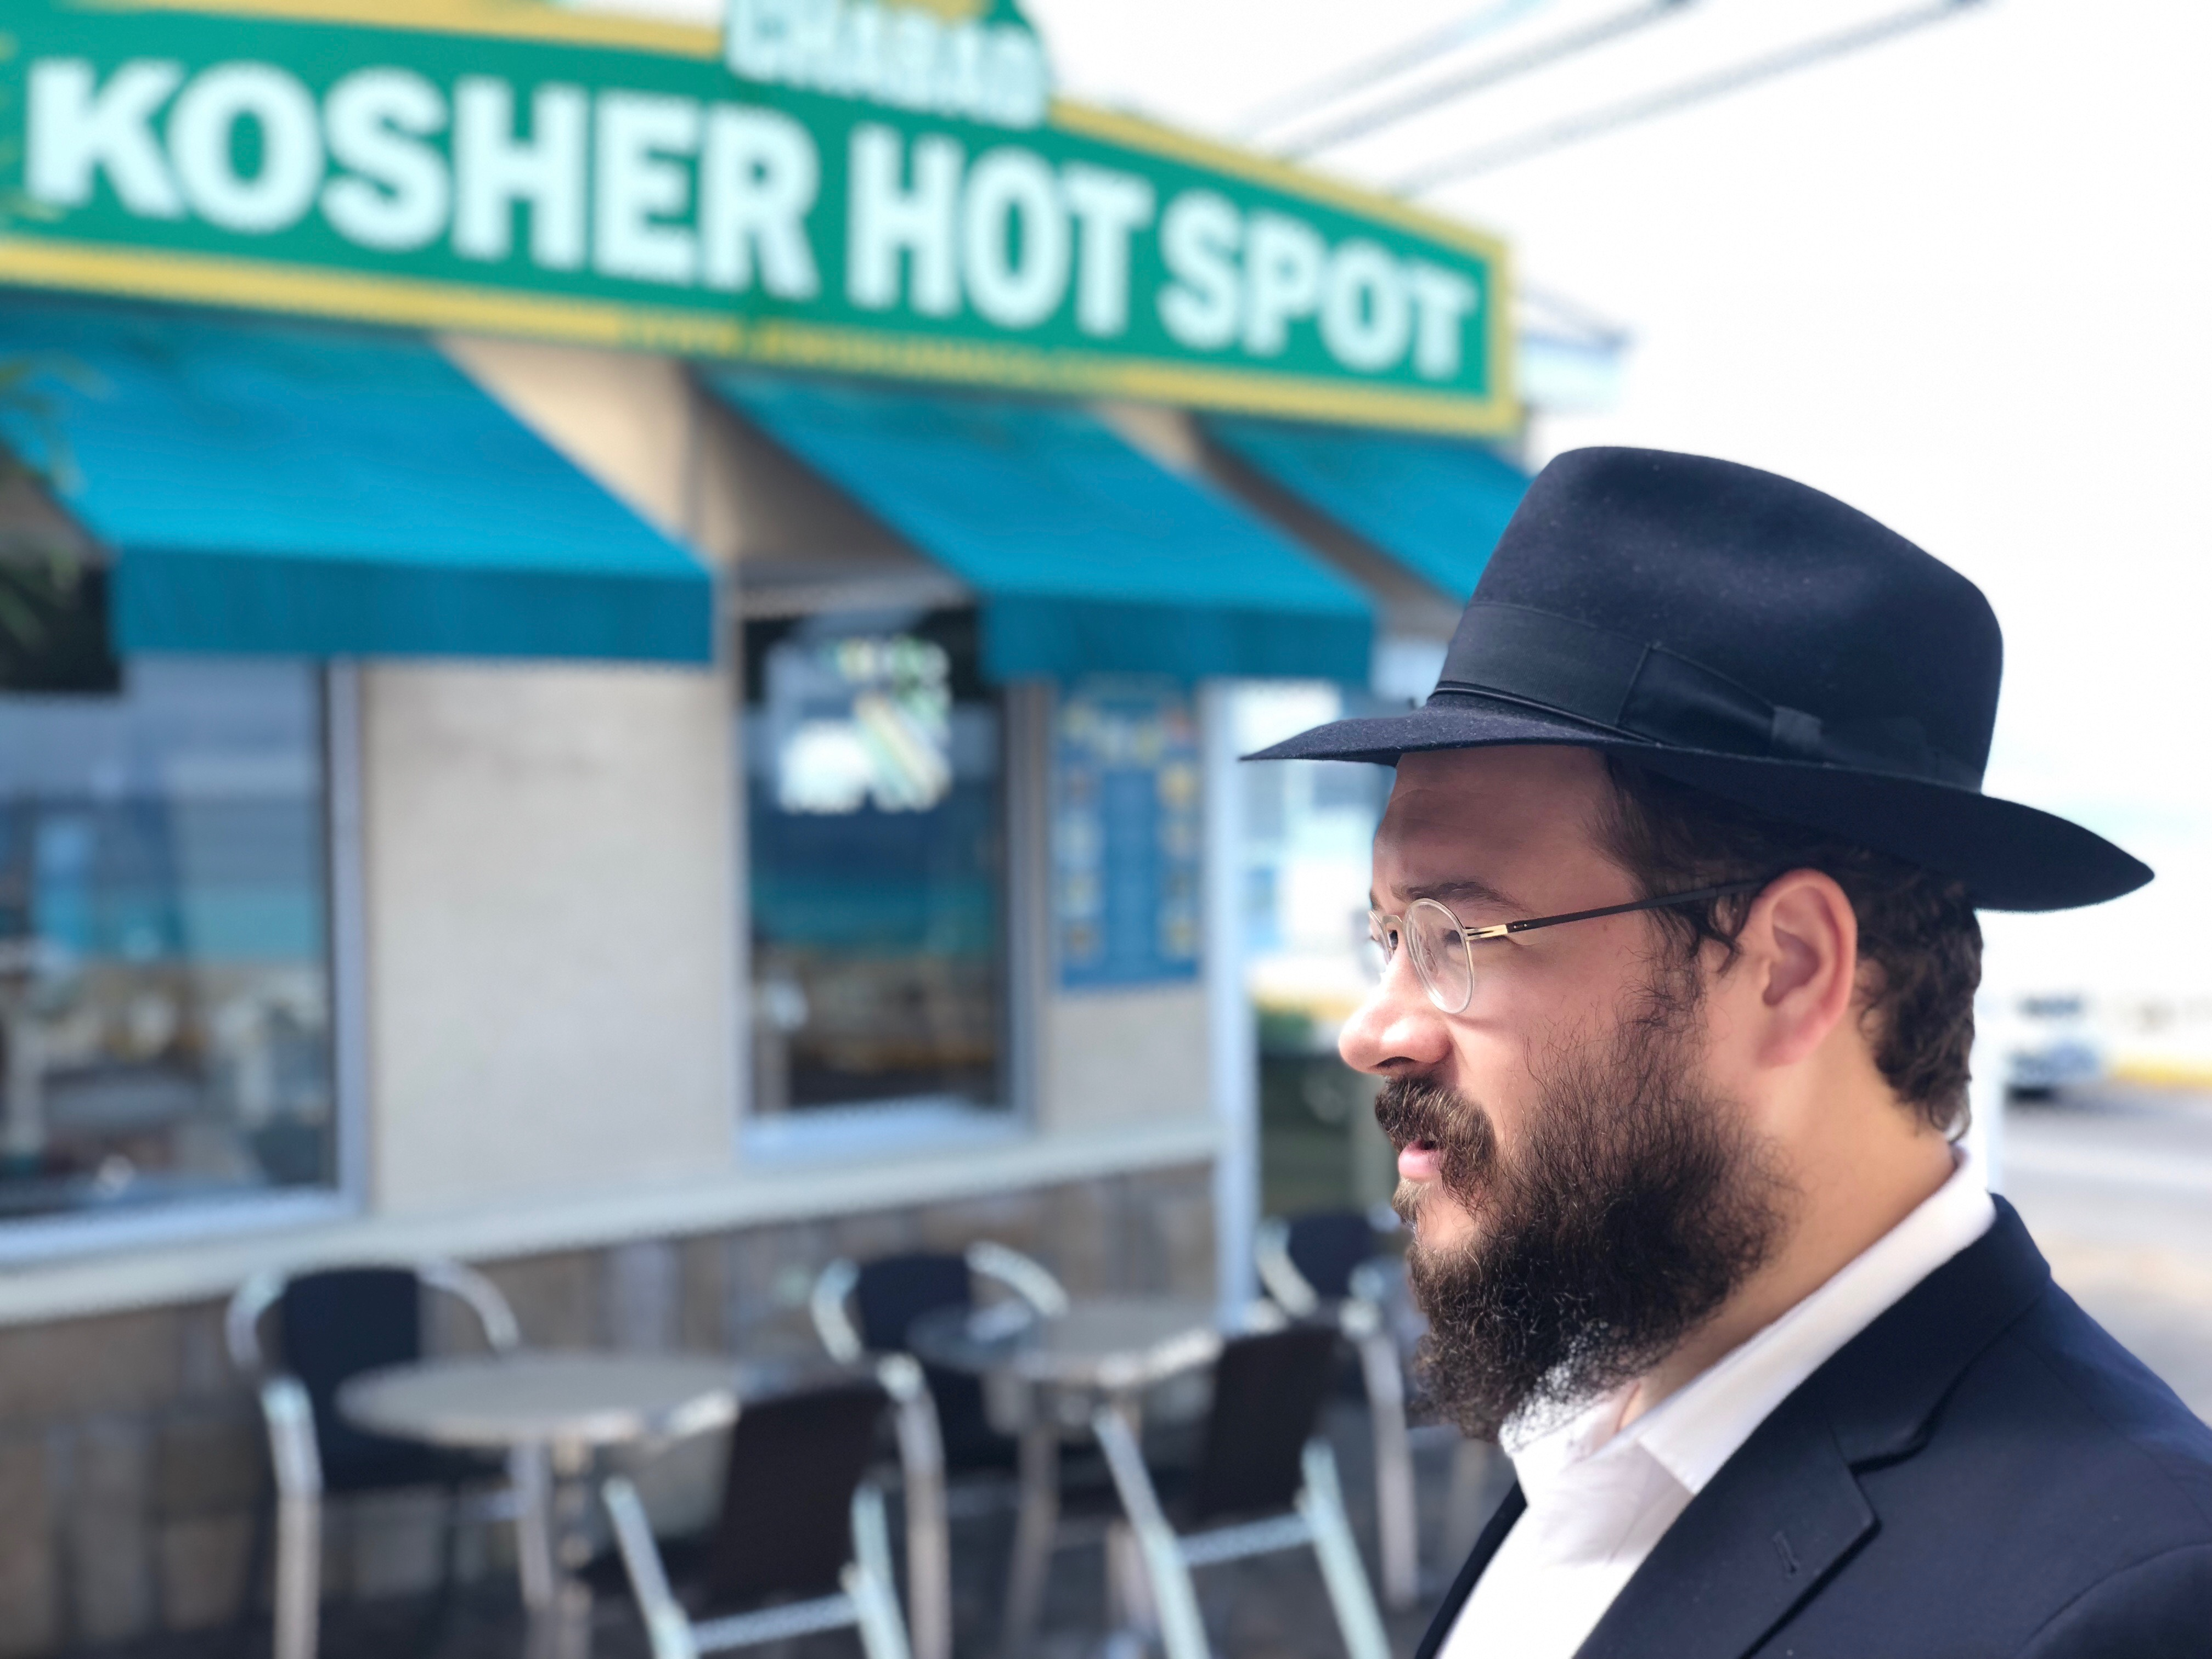 Photo: Jamaica's only Kosher restaurant is open in Montego Bay. Credit:  Chabad of Jamaica